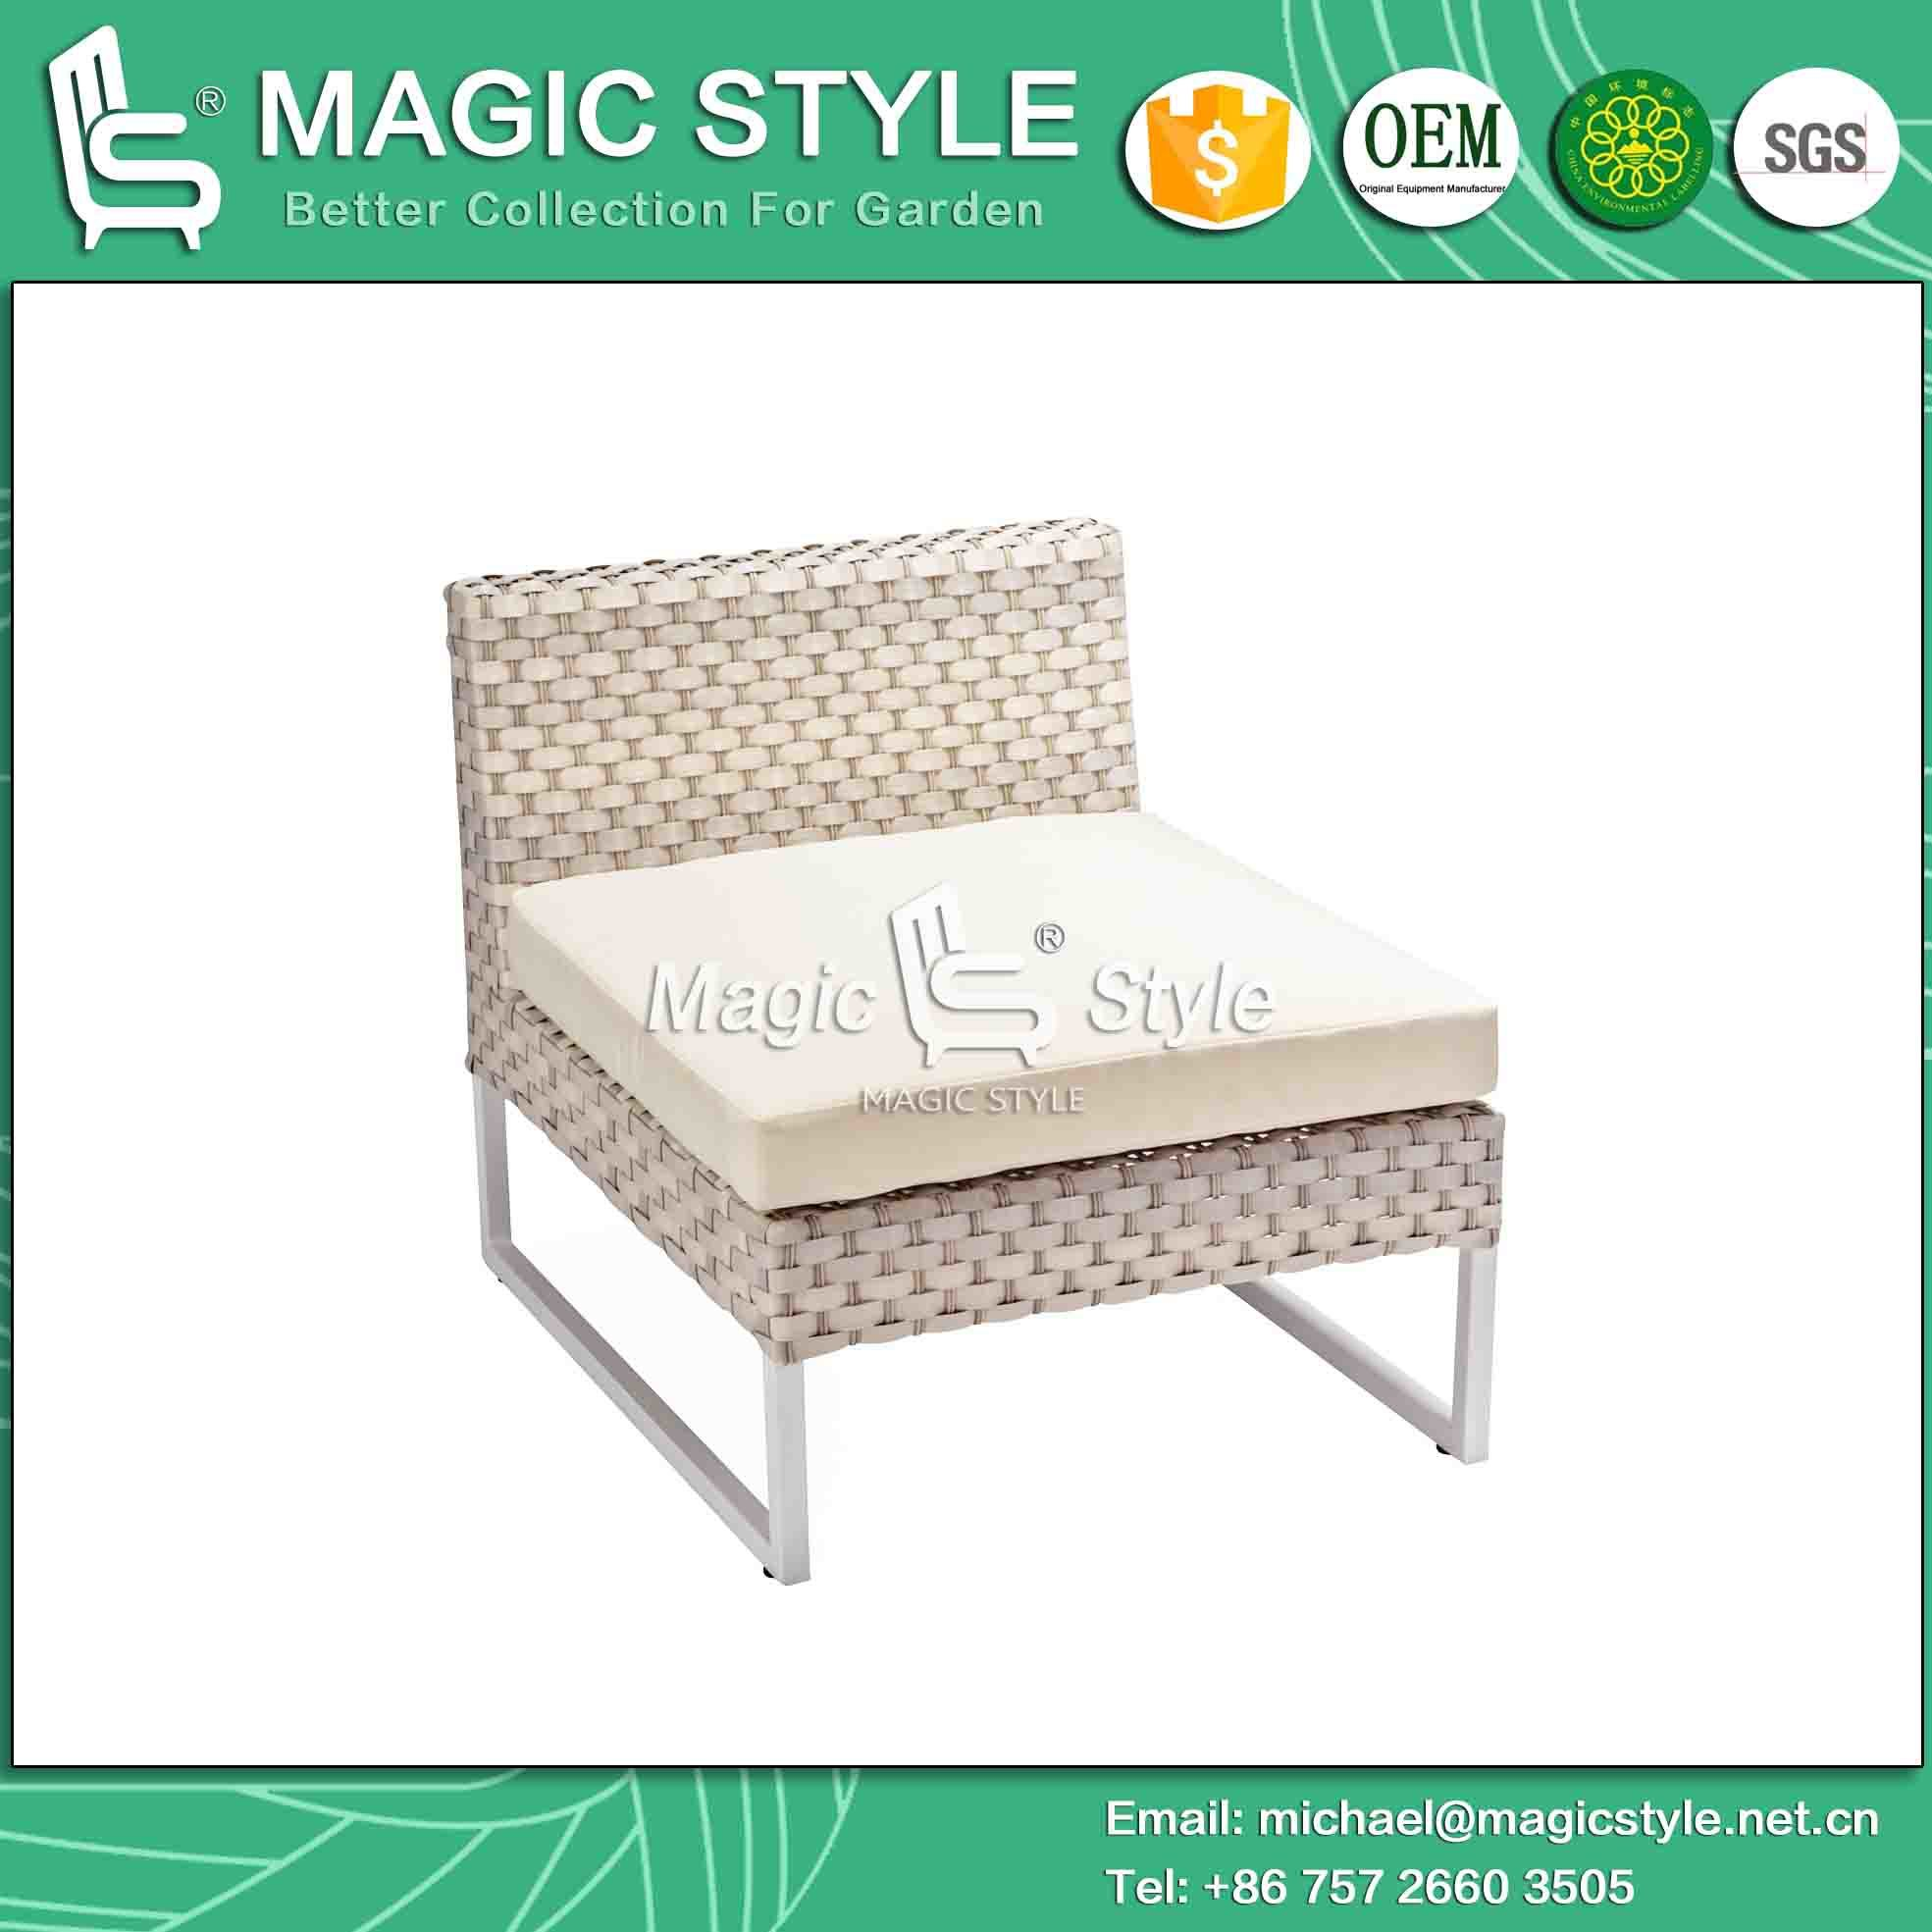 Kd Sofa with Cushion by Wicker Weaving Outdoor Sofa Set (Magic Style)